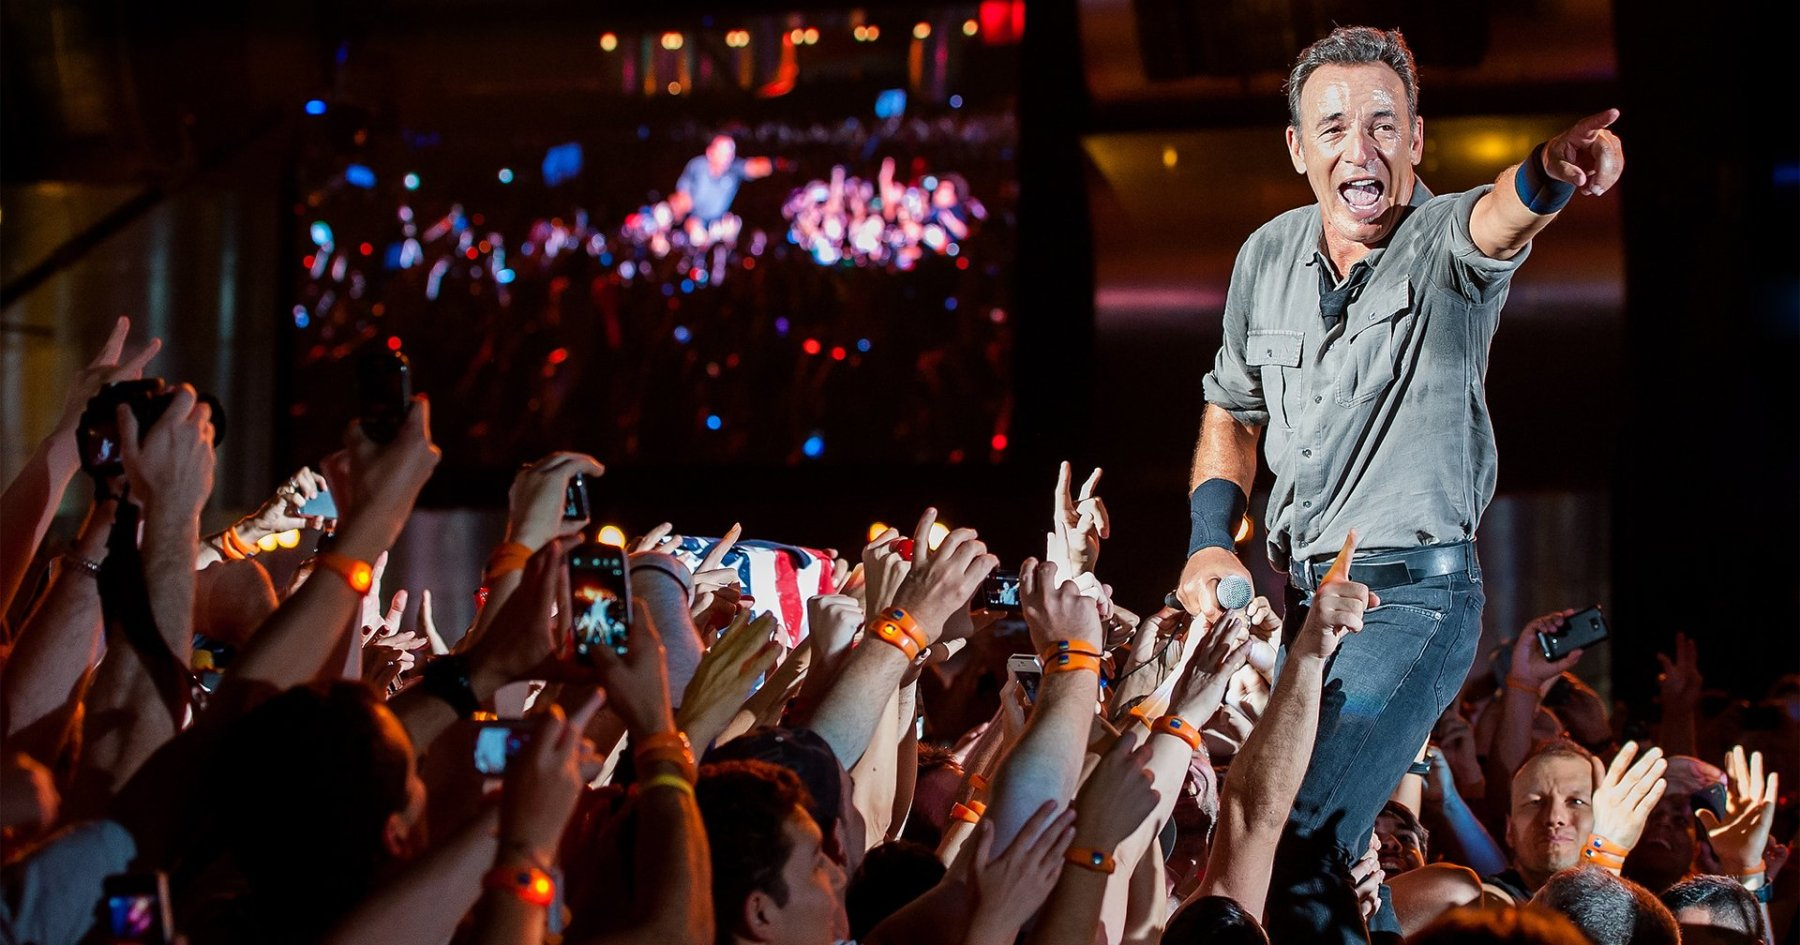 Why I Have Been to Dozens of Bruce Springsteen Shows